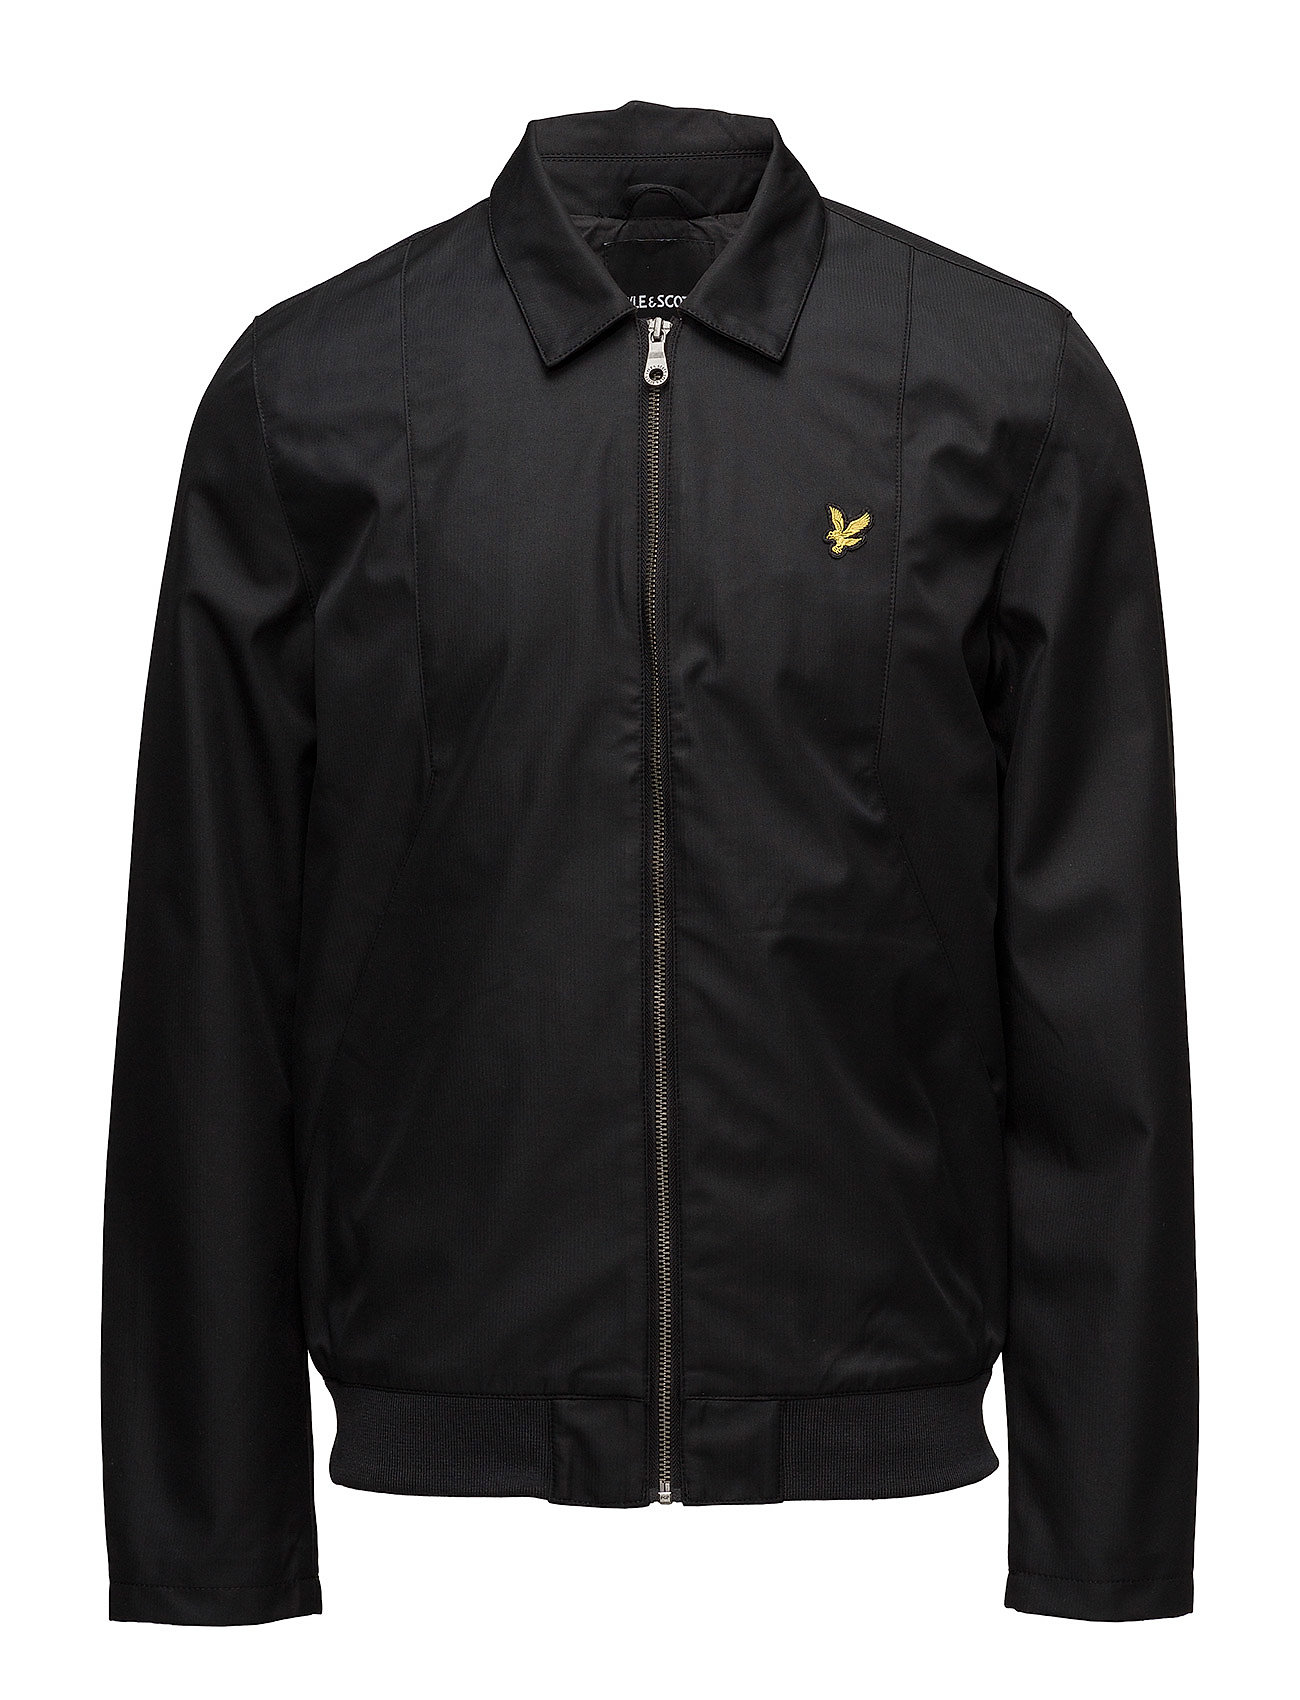 Image of Collared Bomber Jacket Bomberjakke Jakke Sort LYLE & SCOTT (2928963425)